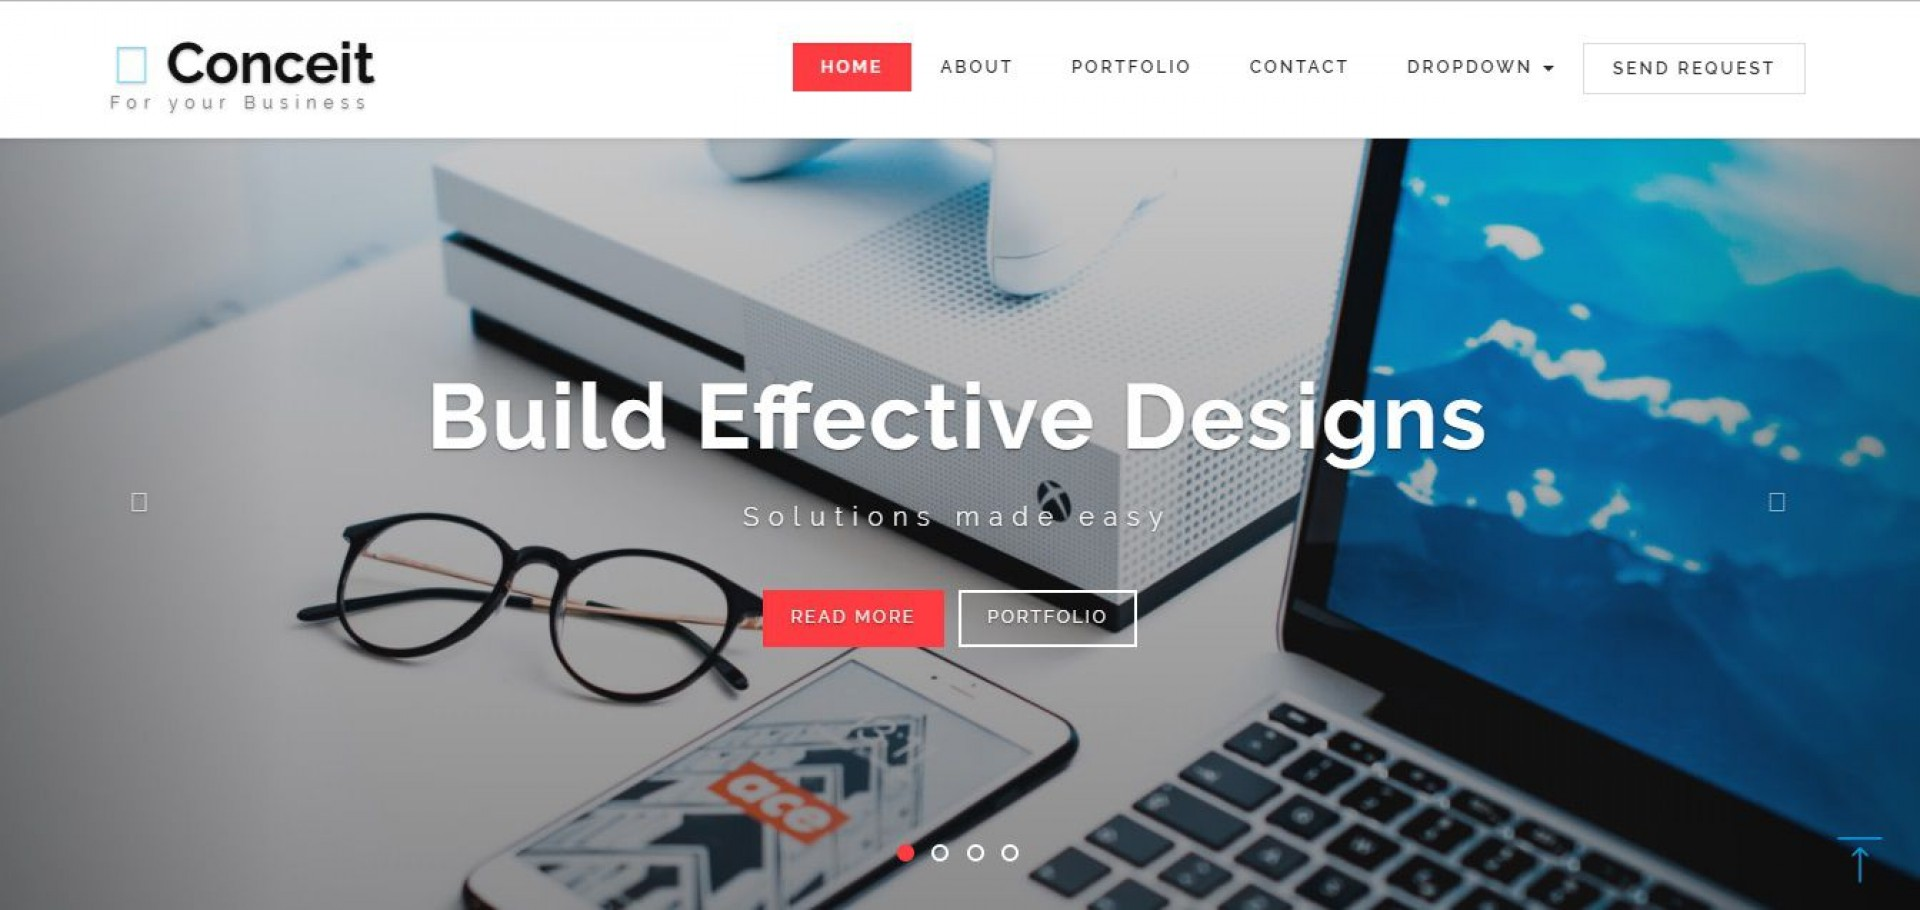 007 Fearsome Free Responsive Html5 Template High Def  Best Download For School Medical1920